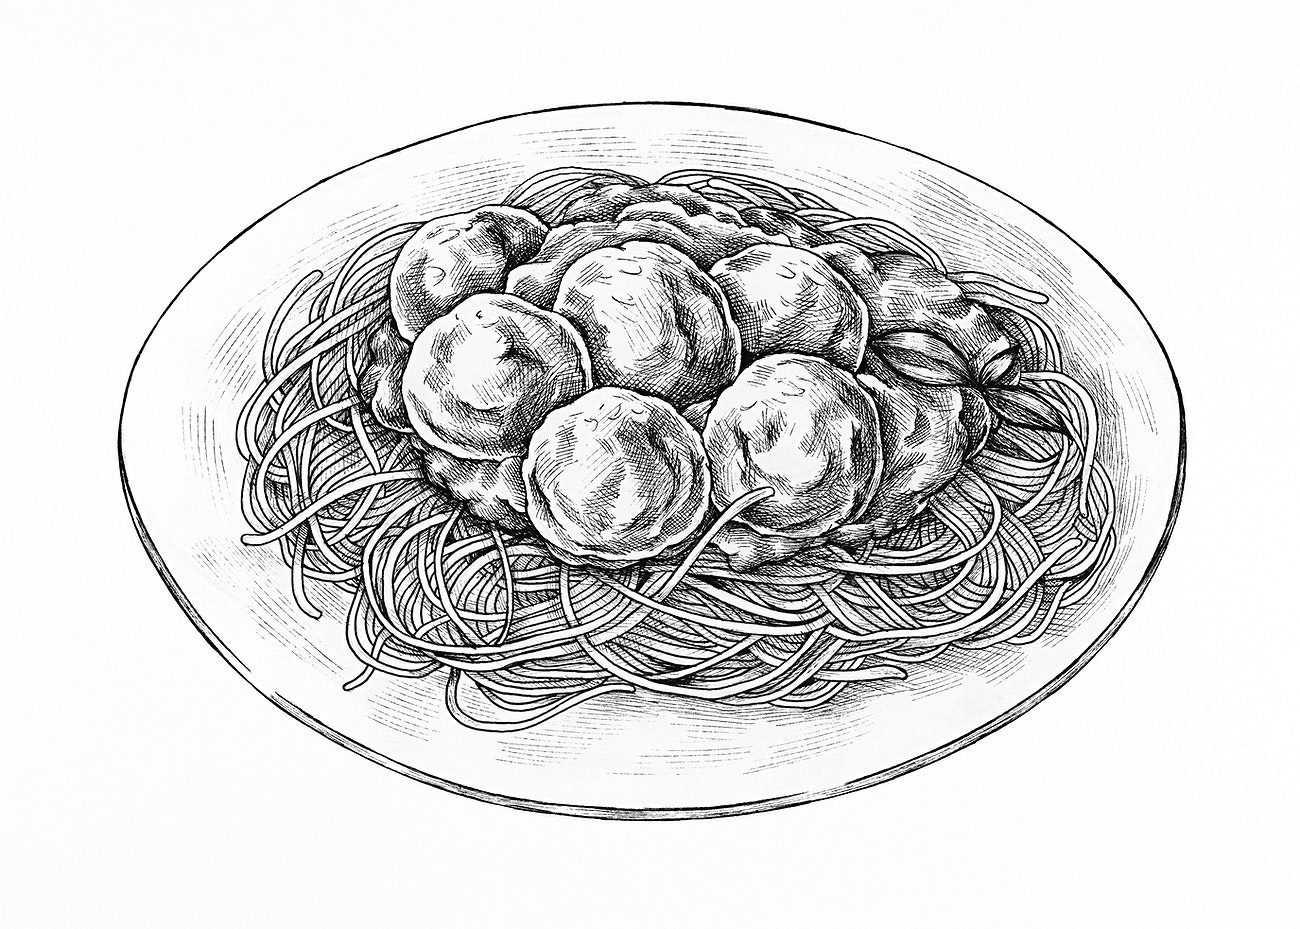 Spaghetti meatballs ink drawing | Royalty free ...